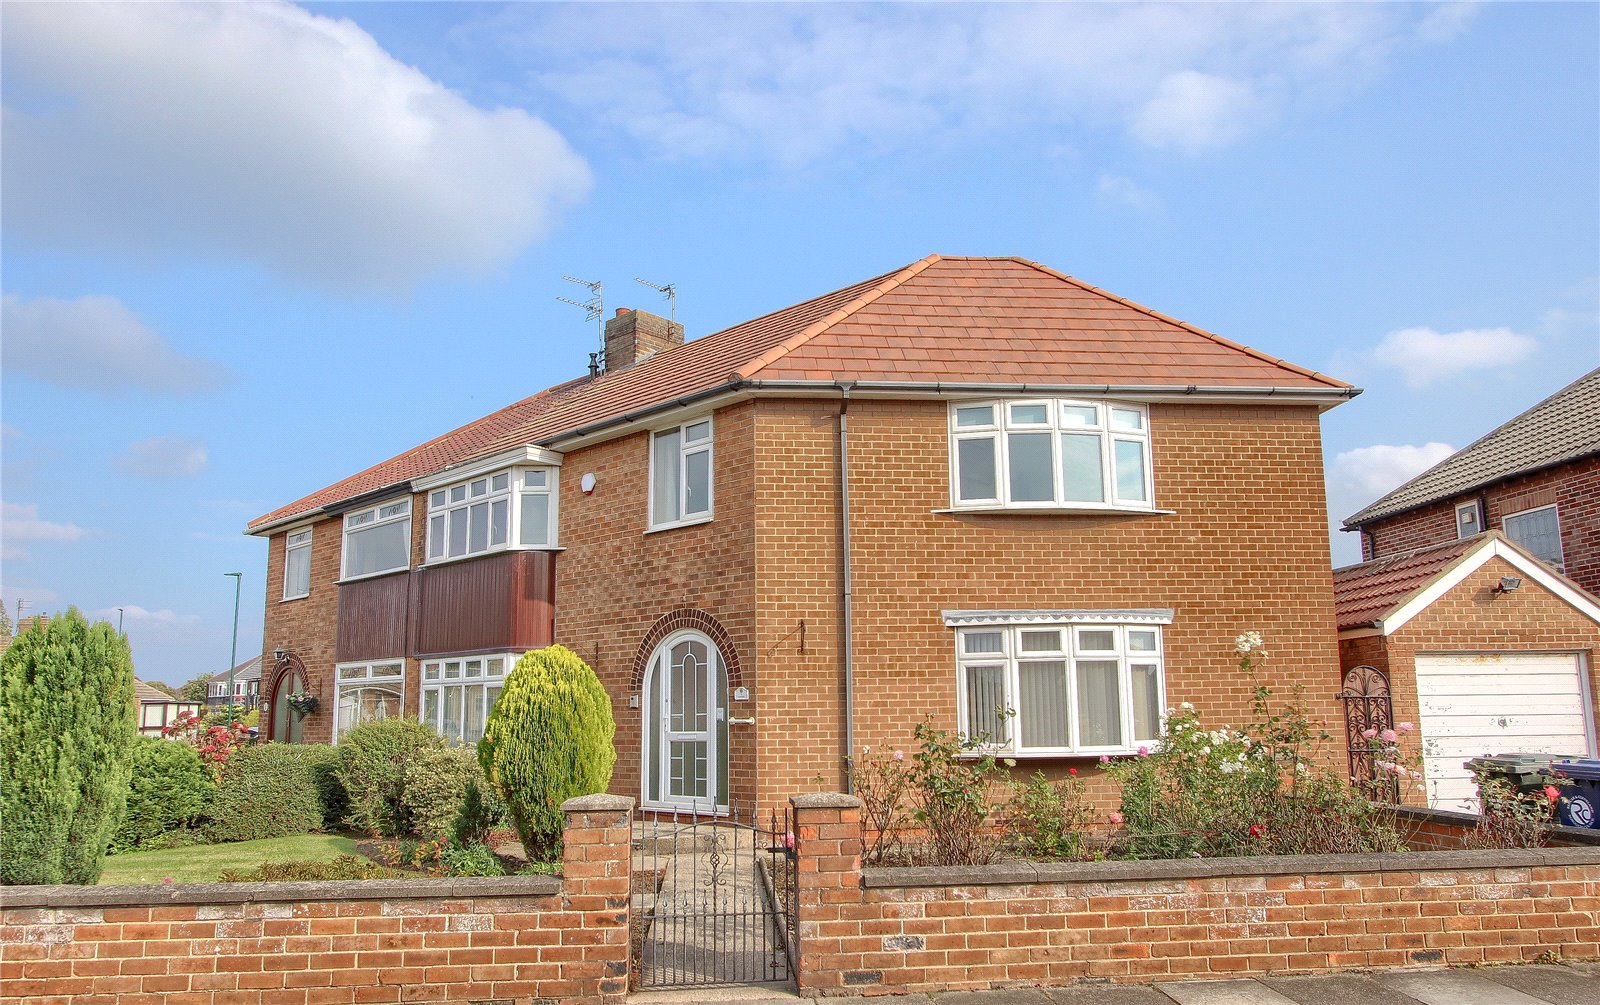 5 bed house for sale in Ascot Road, Redcar 1